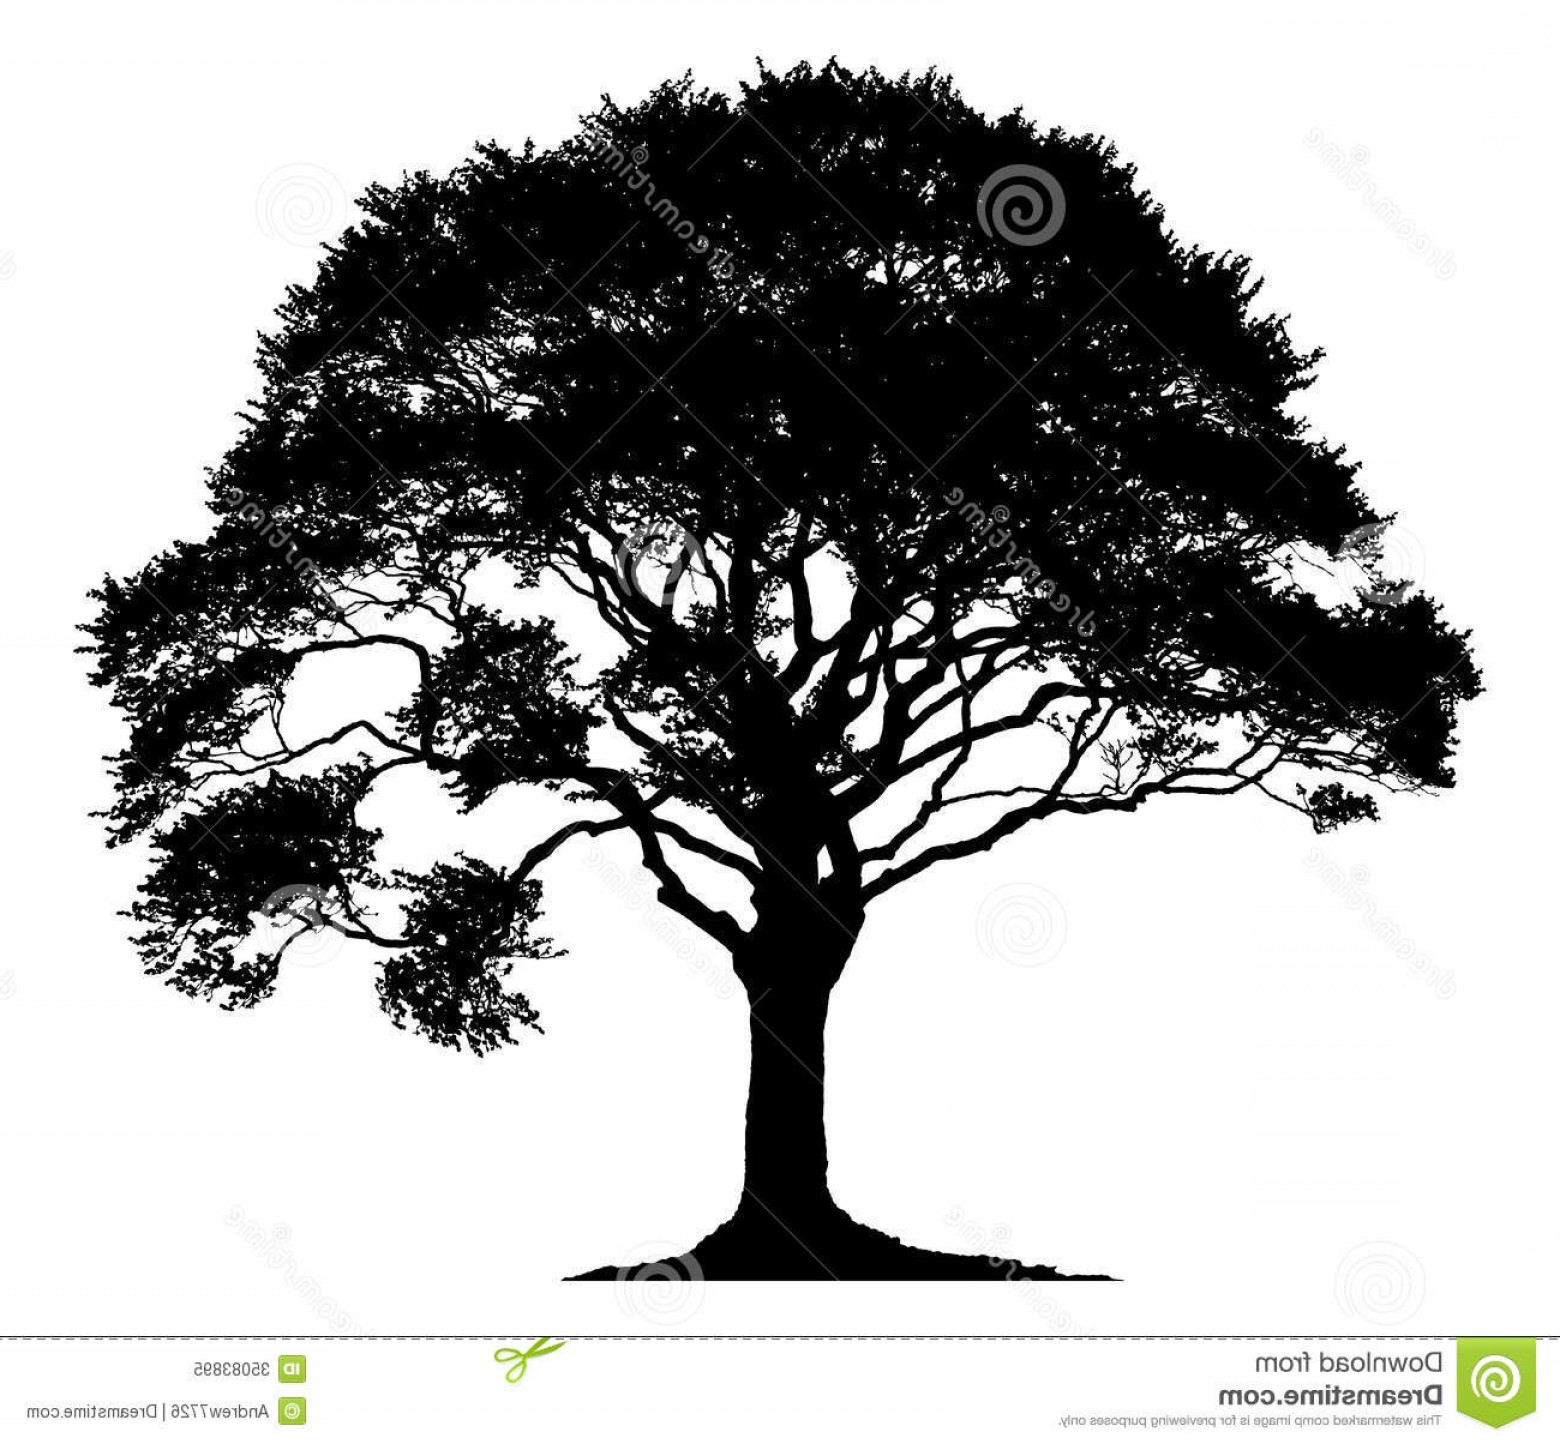 Oak Tree Silhouette Vector Graphics: Royalty Free Stock Photo Silhouette Lone Tree Isolated White Background Image